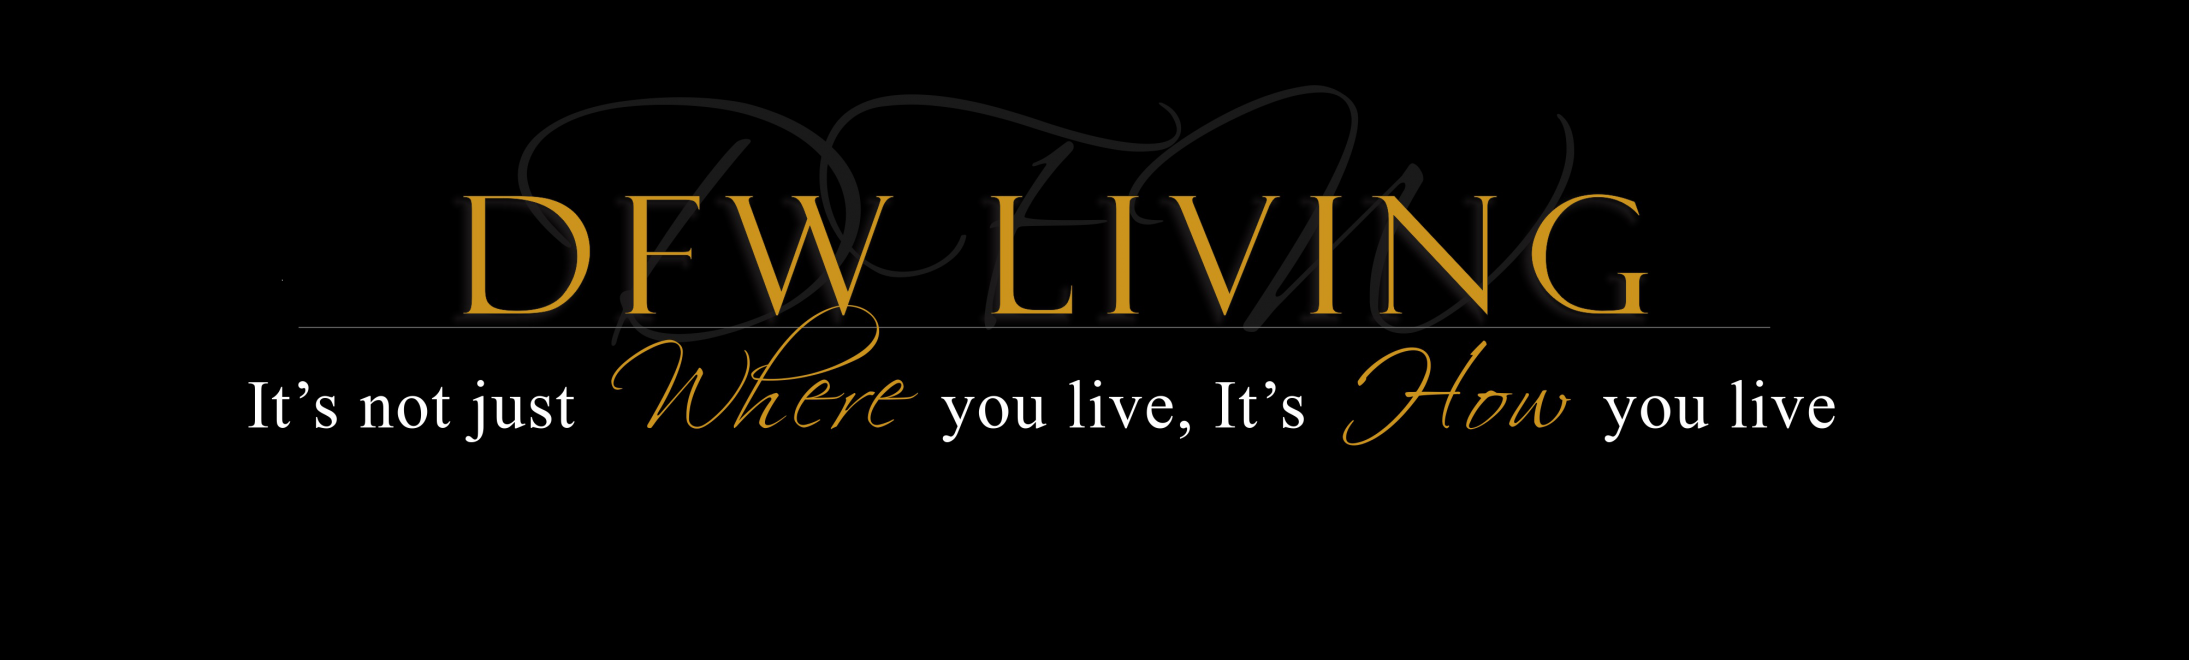 DFW Living - North Texas Real Estate